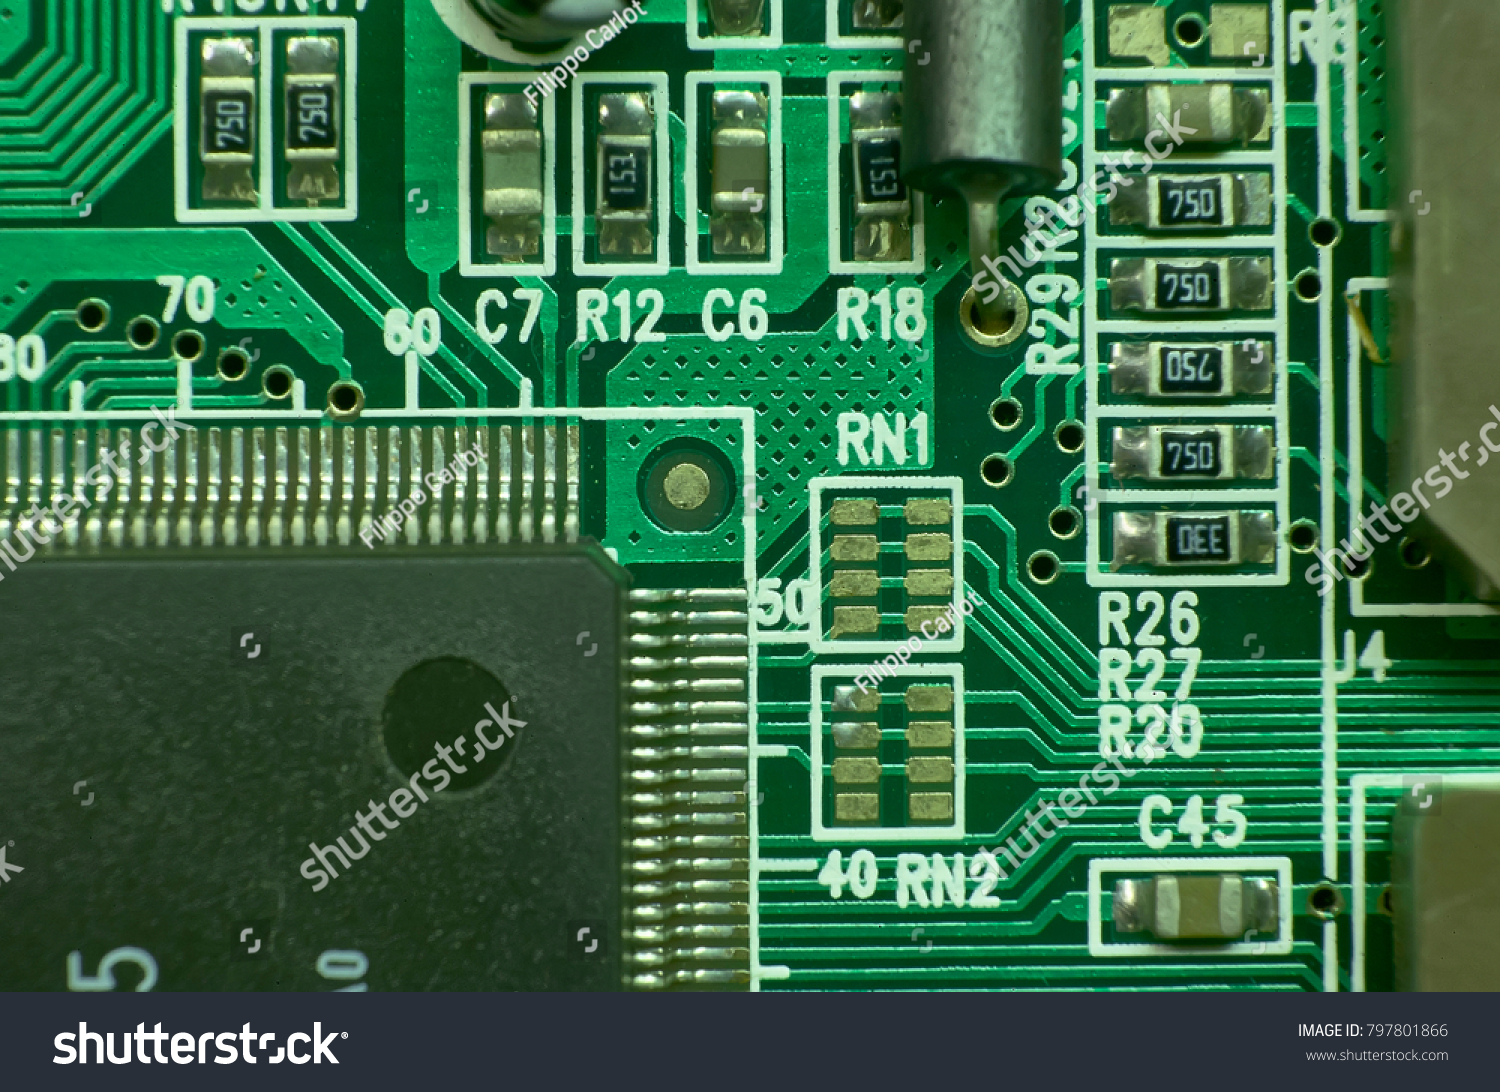 Contacts Electronic Circuits Printed Various Components Stock Photo Circuit And Projects With Microprocessors Excellent Texture For Graphic